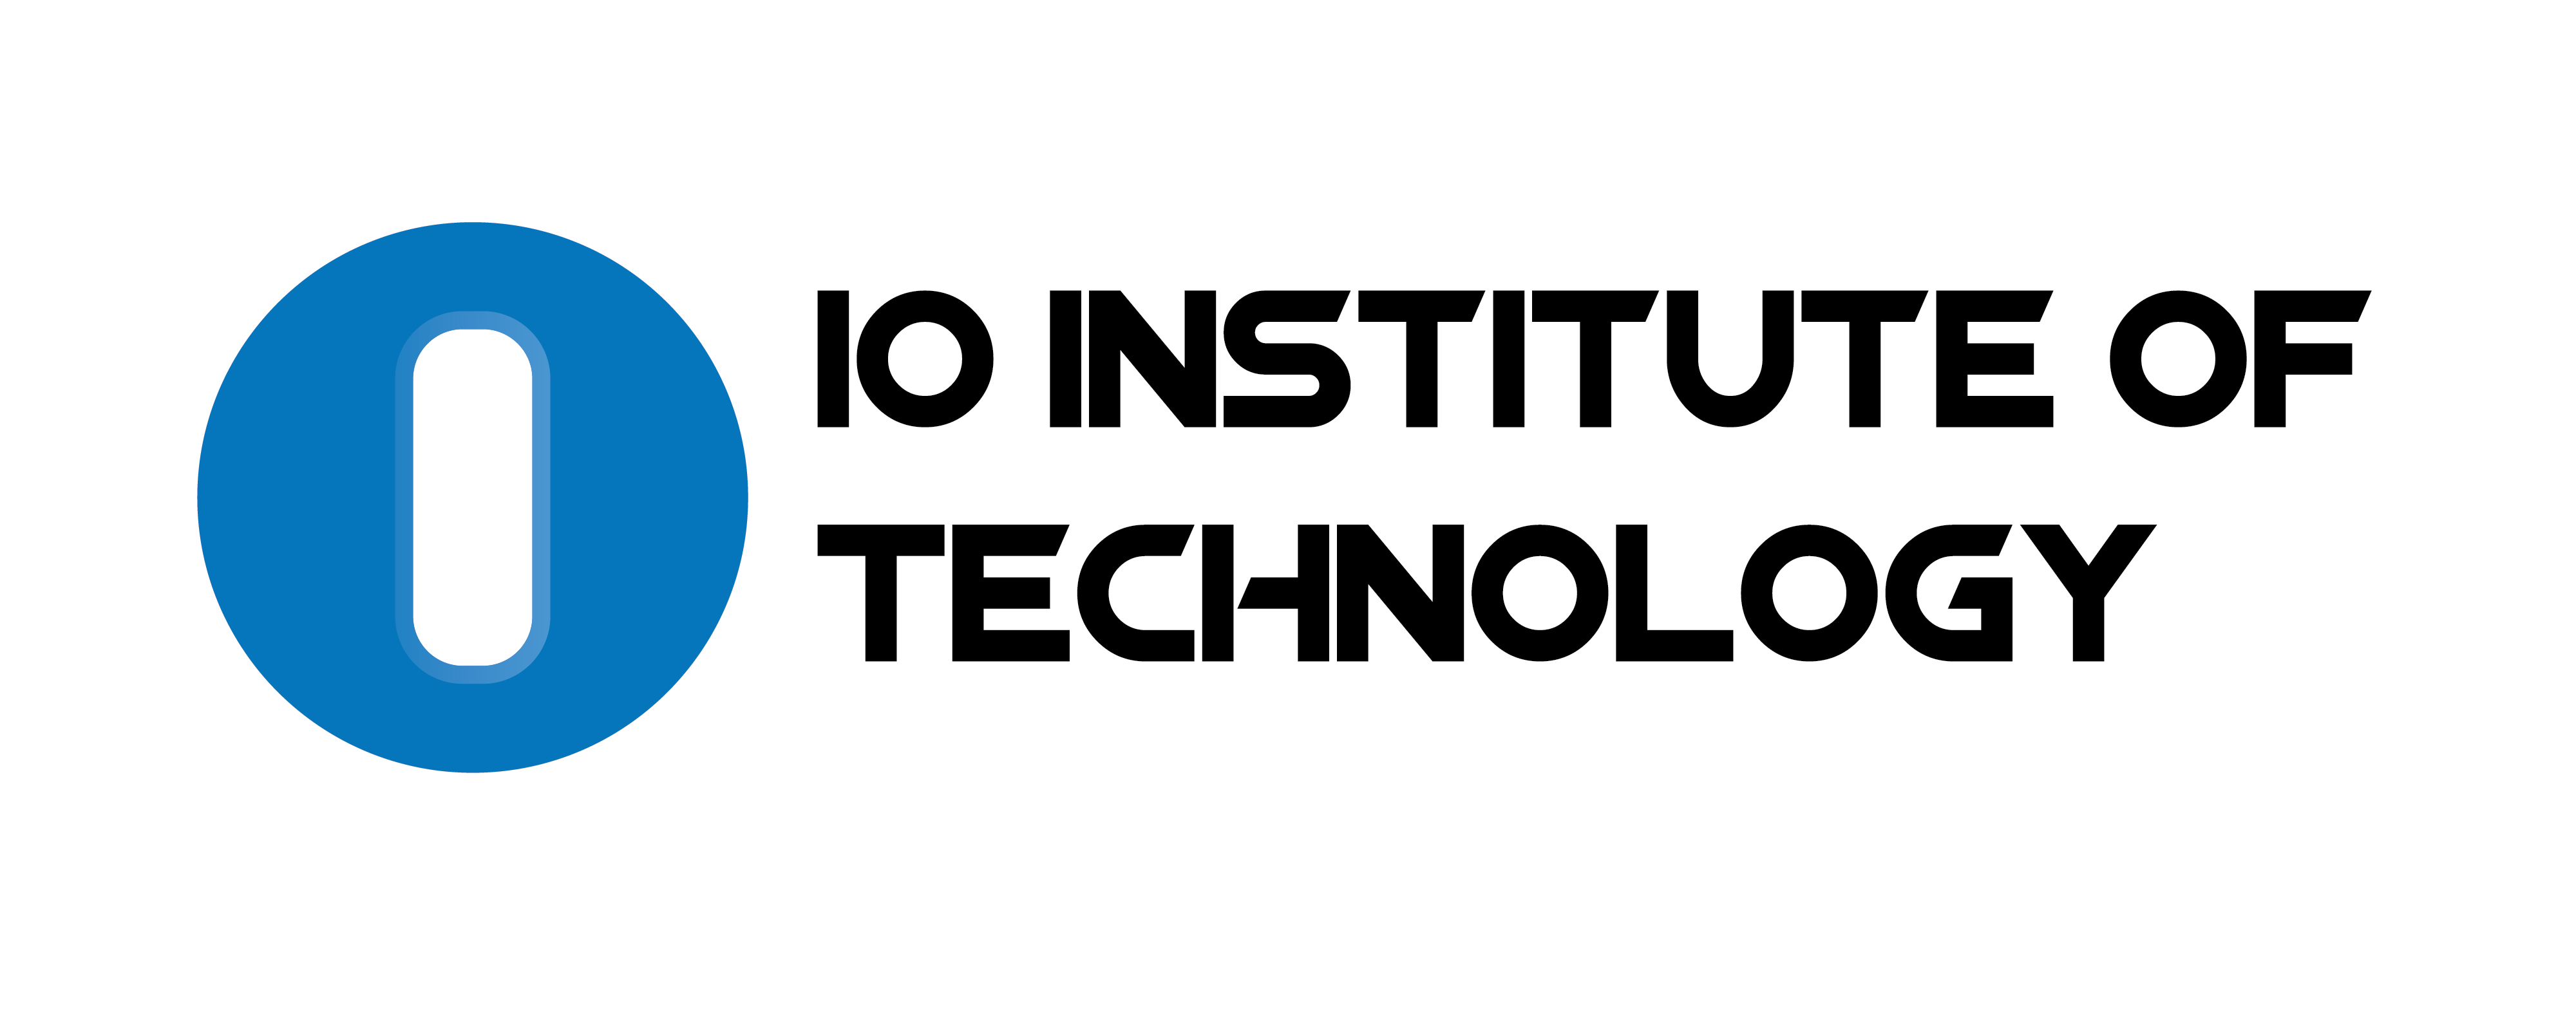 Io Institute Of Technology